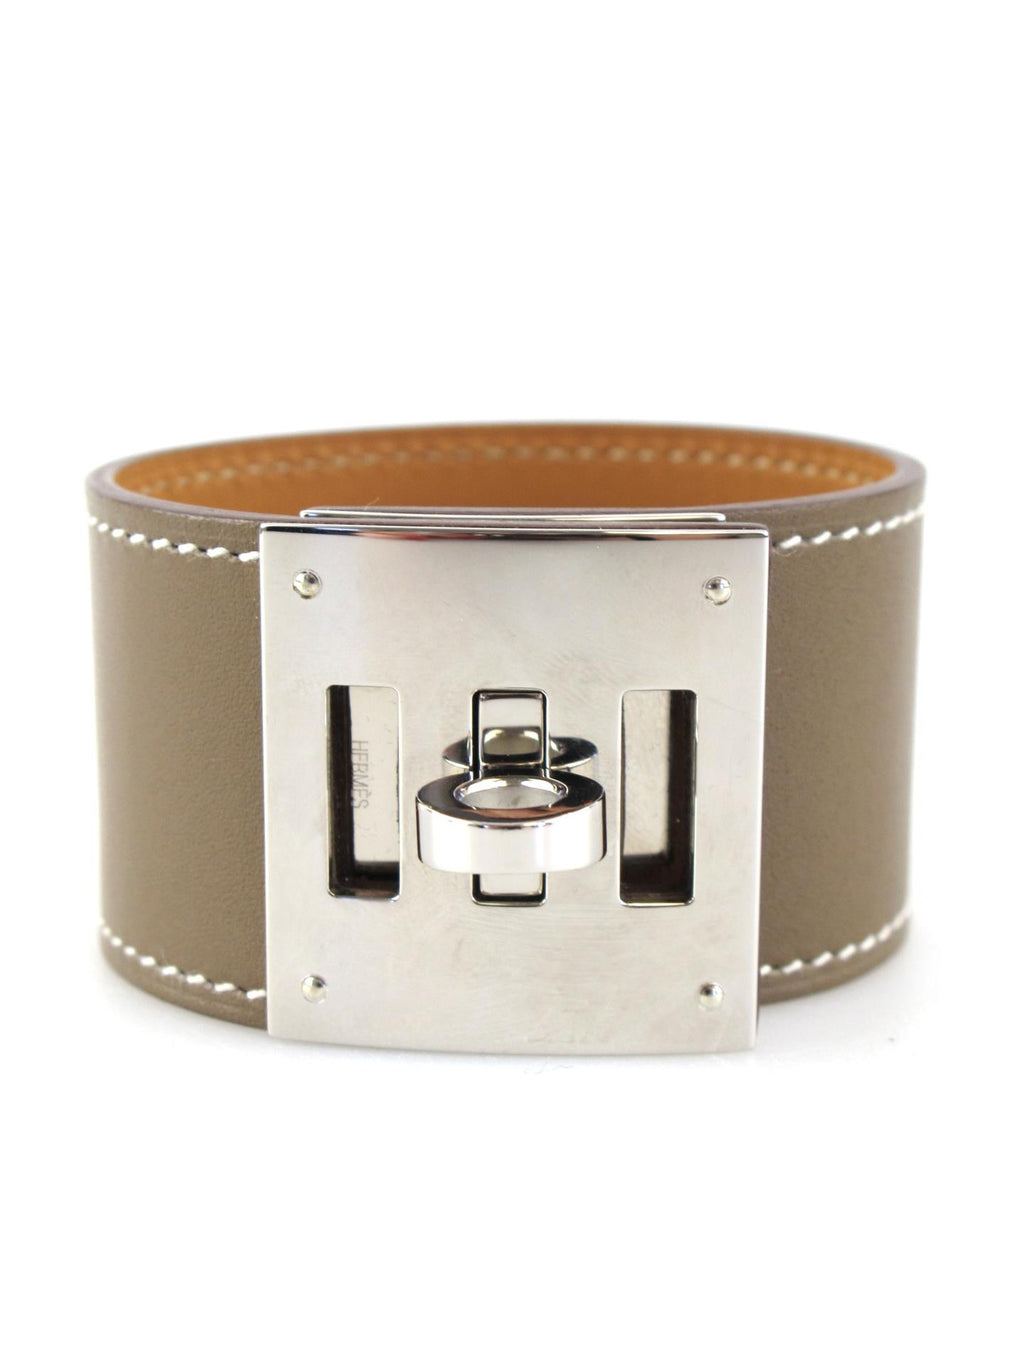 HERMES Etoupe Swift Kelly Dog Bracelet with Palladium Hardware